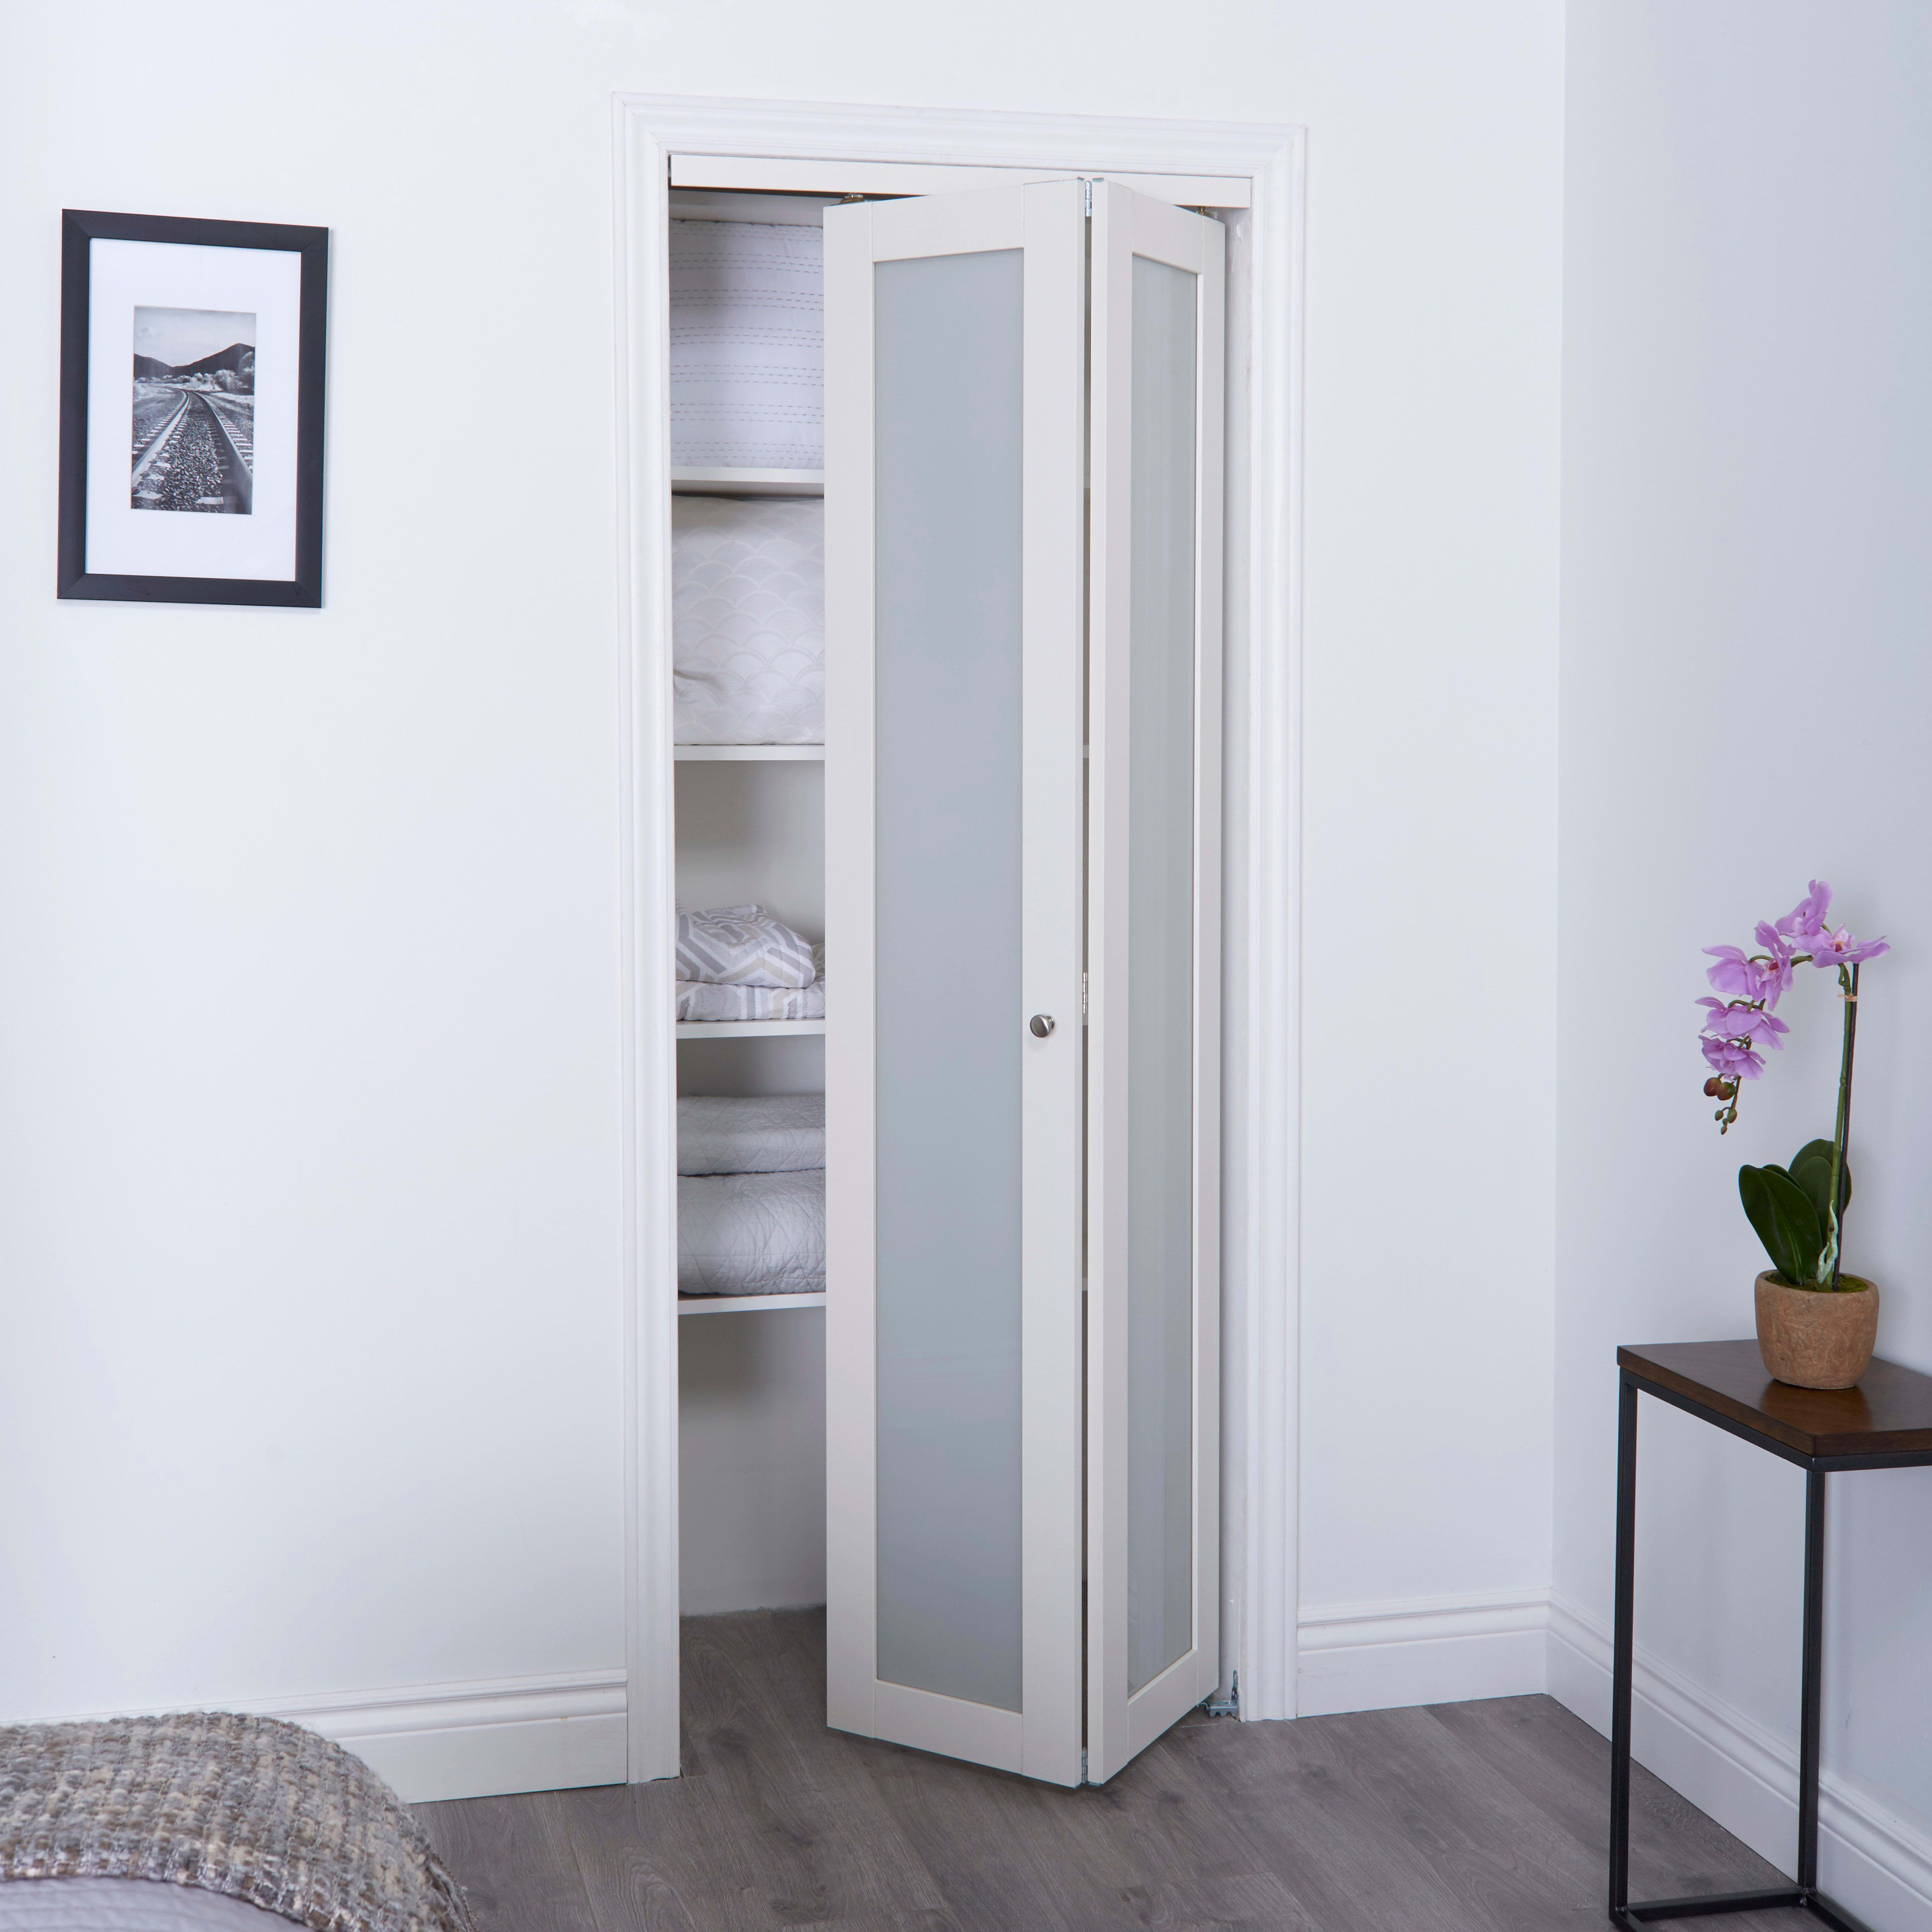 Renin Eu3010bwfge024080 Off White Euro 24 X 80 French Style 1 Lite Interior Bi Fold Closet Door With Sliding Mini 3 Wheel Connector In 2020 Frosted Glass Closet Doors Glass Closet Doors Bifold Closet Doors